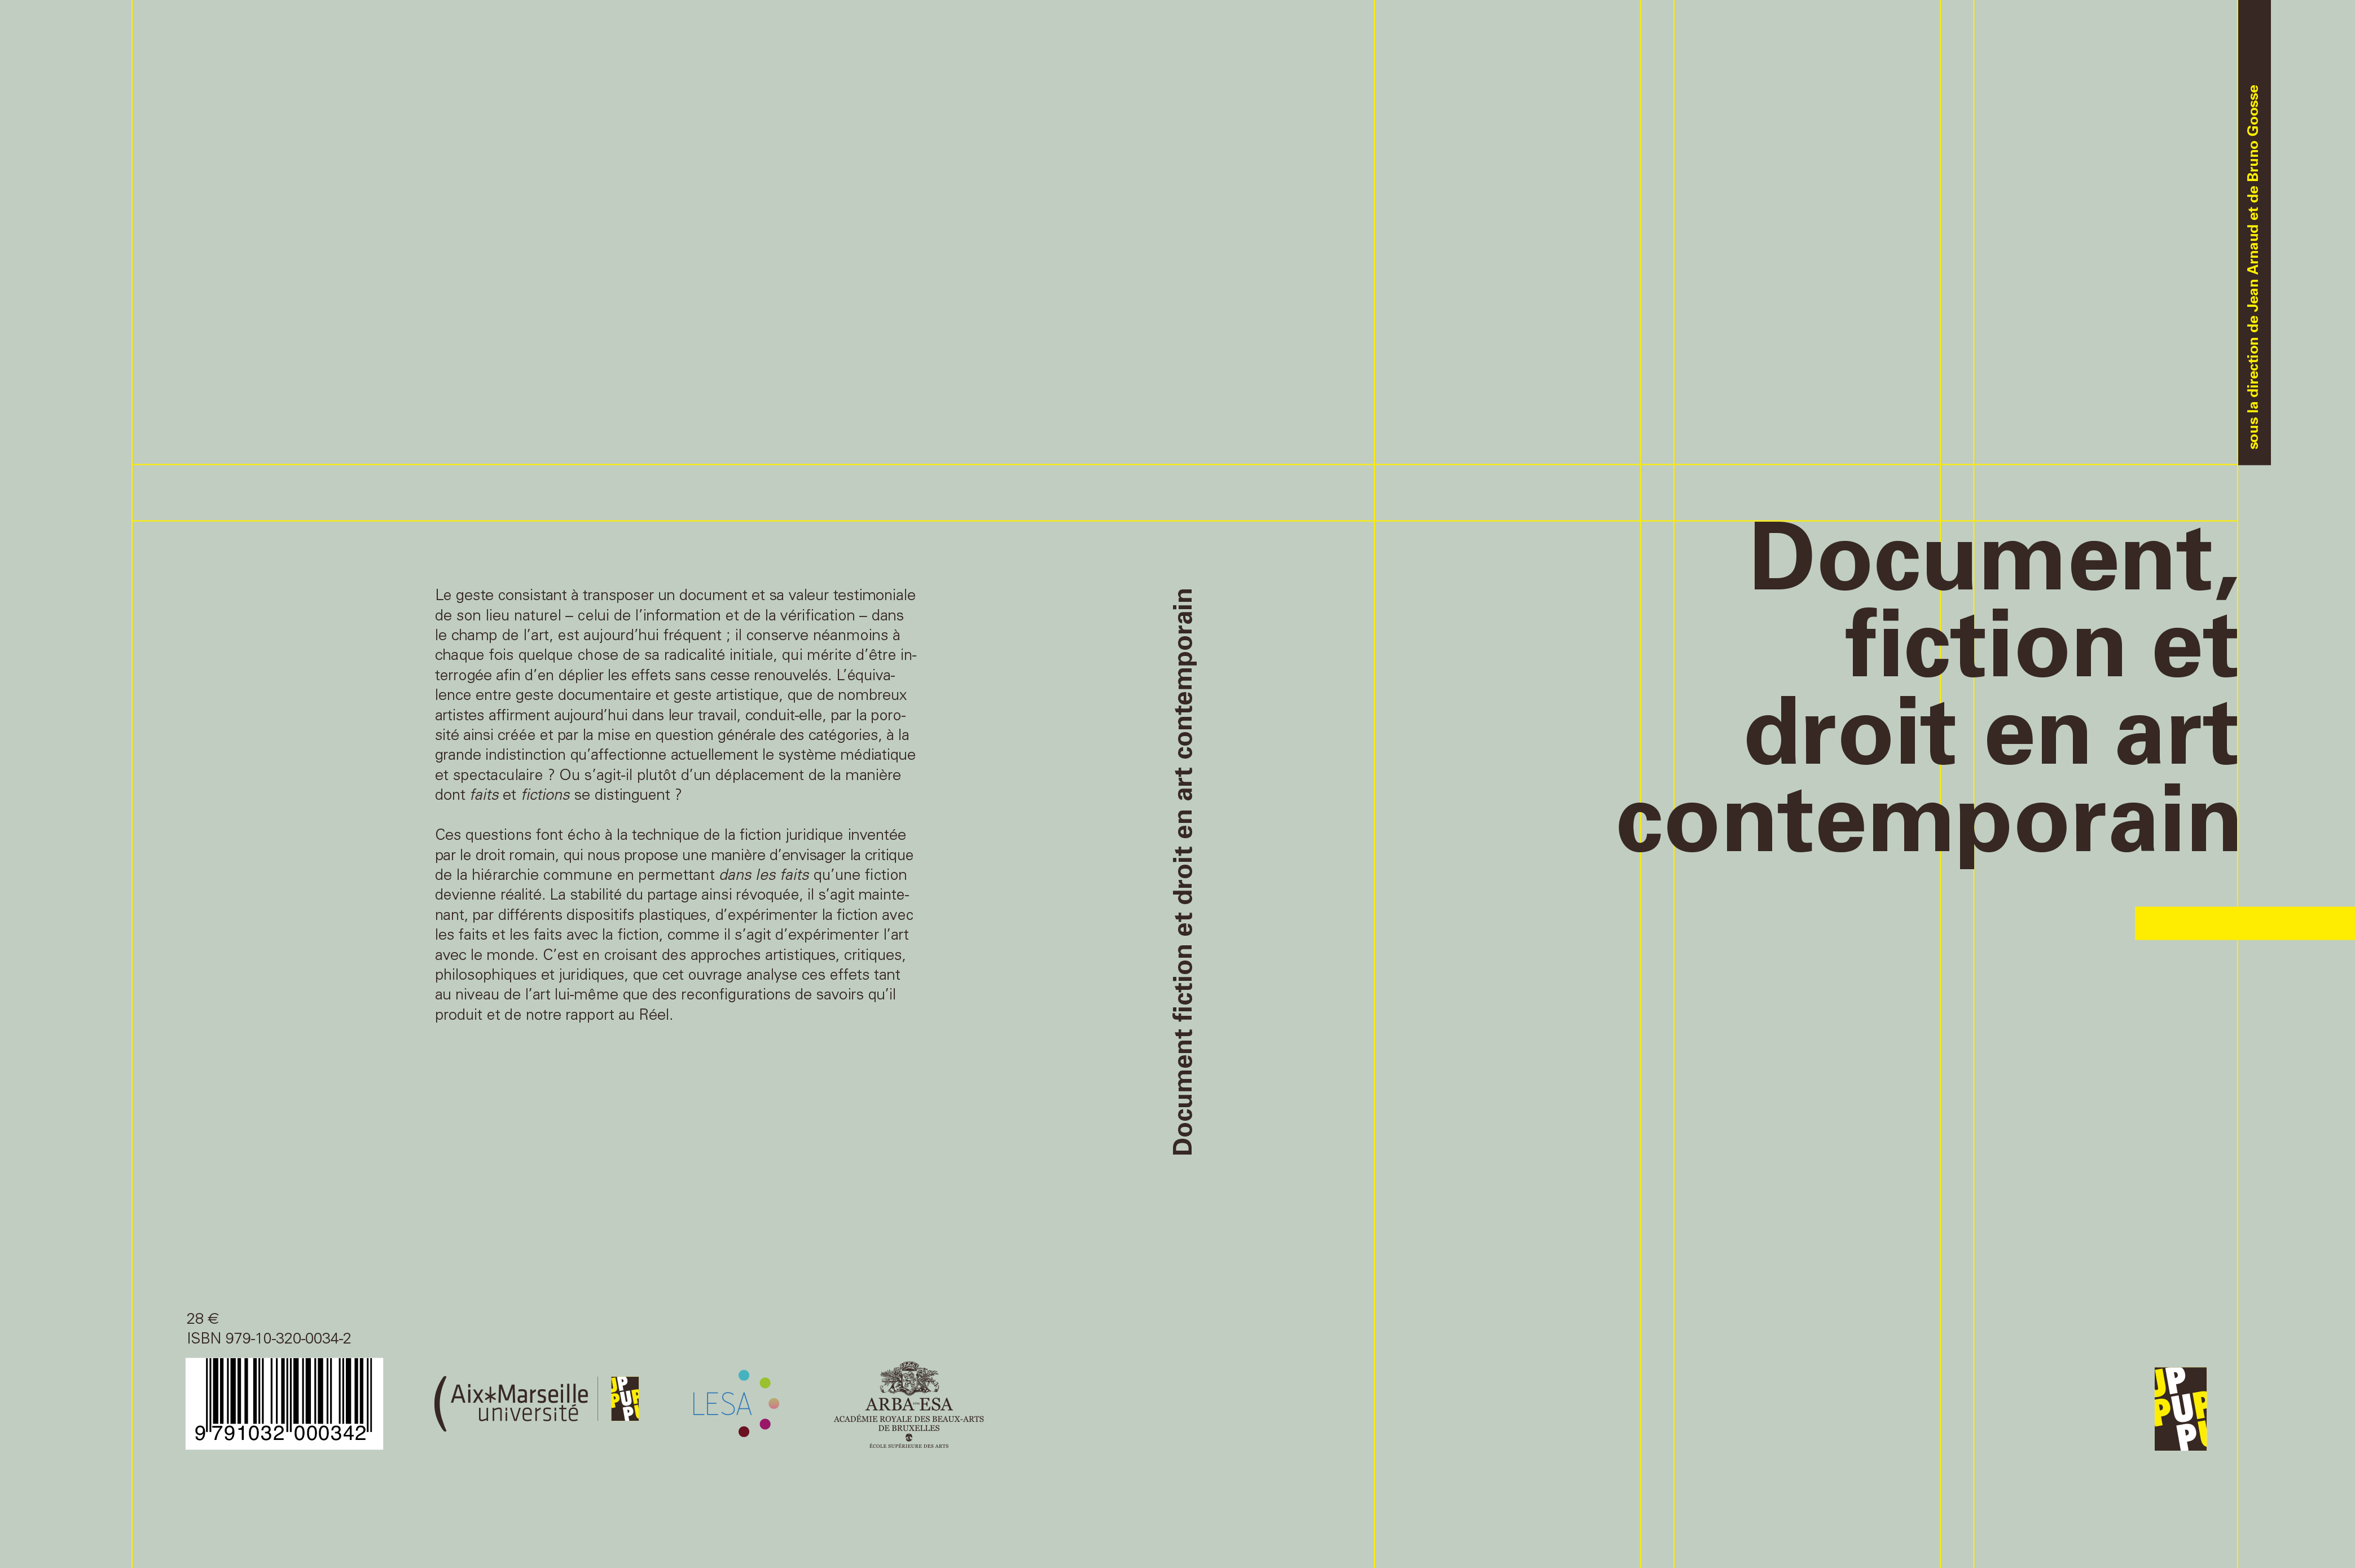 by mixing document and fiction